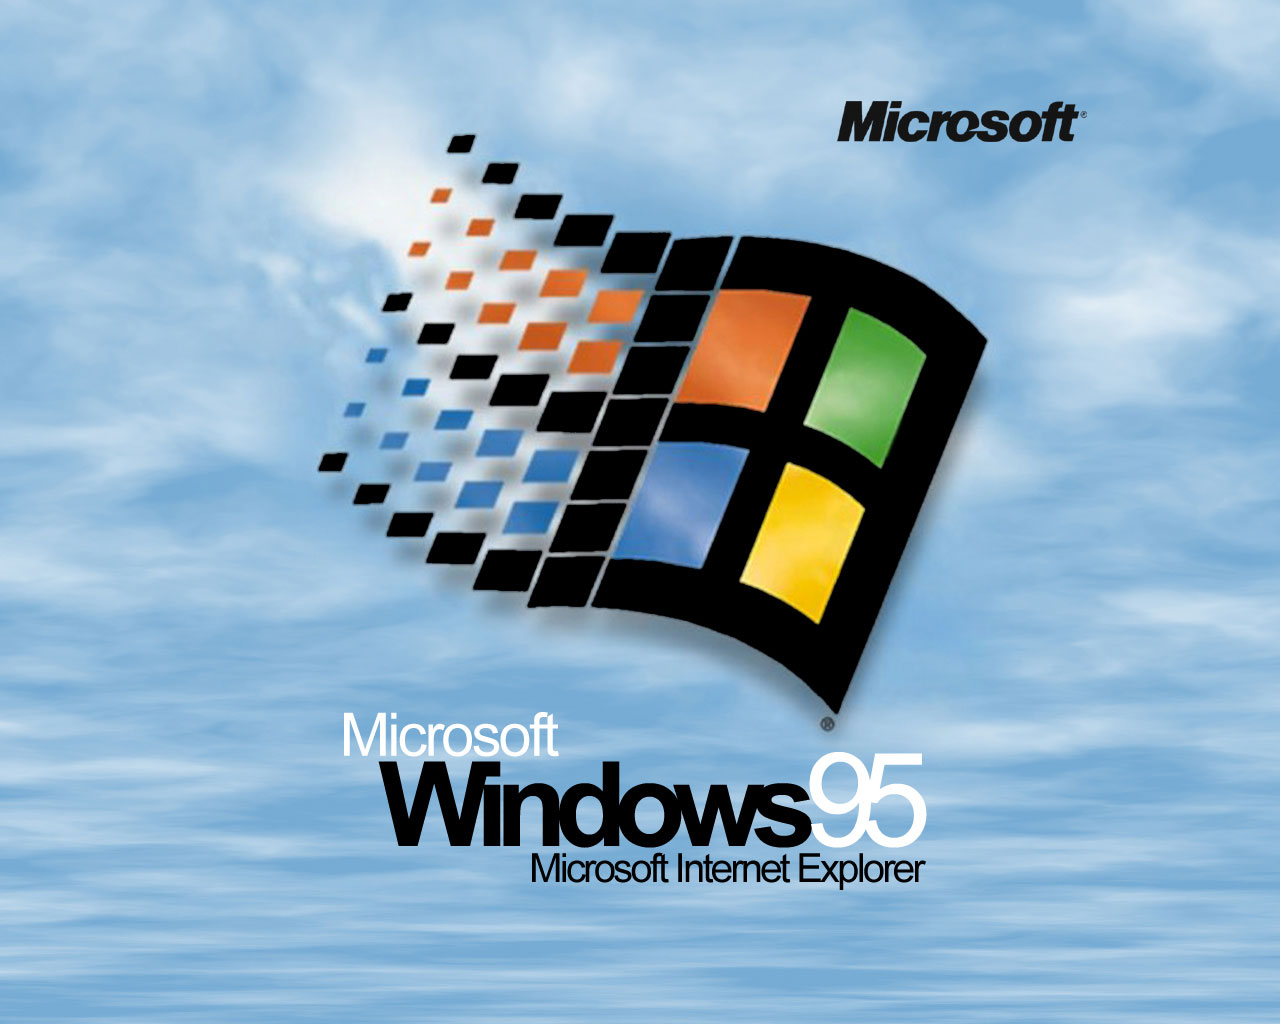 Музыка и видеоролик из рекламы Microsoft Windows 95 - Start me Up